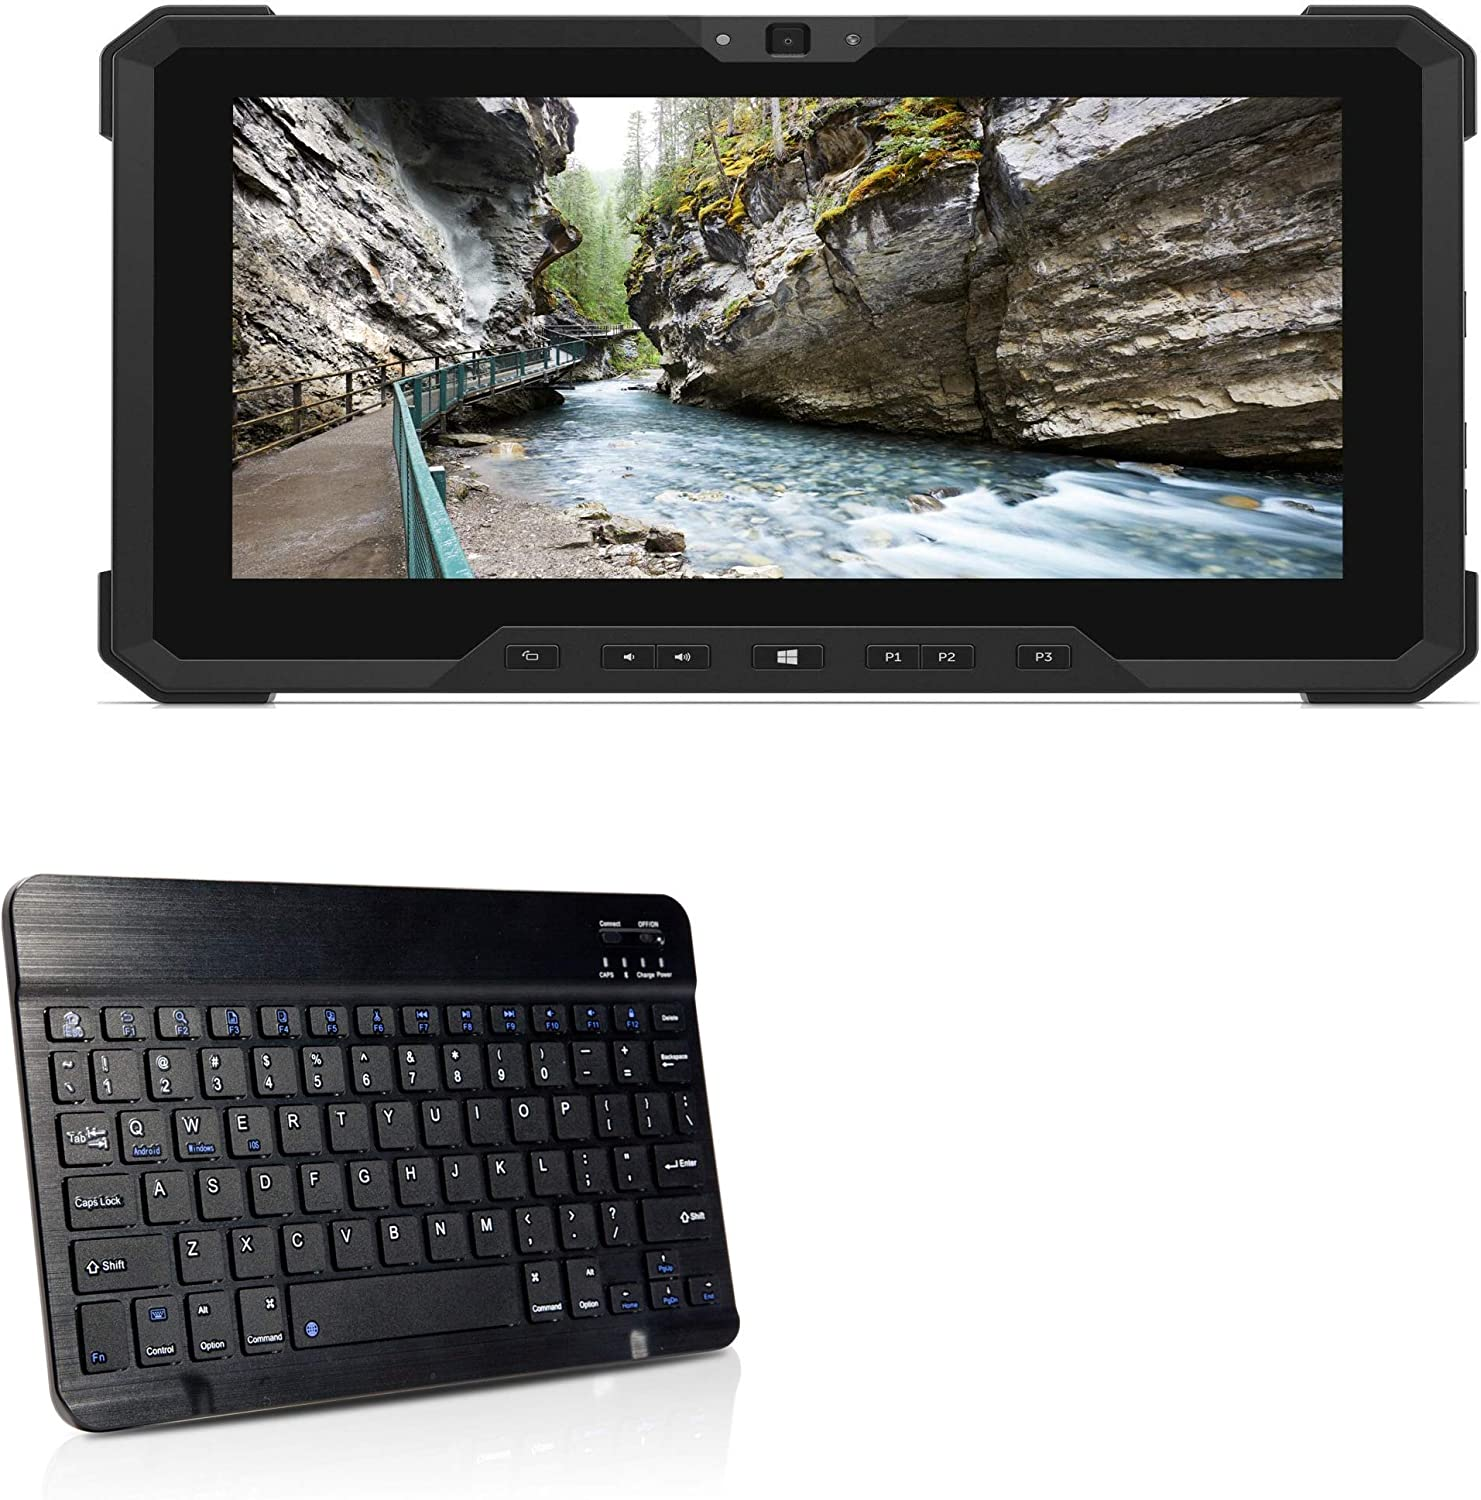 Dell Latitude 7212 Rugged Extreme Tablet Keyboard, BoxWave [SlimKeys Bluetooth Keyboard] Portable Keyboard with Integrated Commands for Dell Latitude 7212 Rugged Extreme Tablet - Jet Black